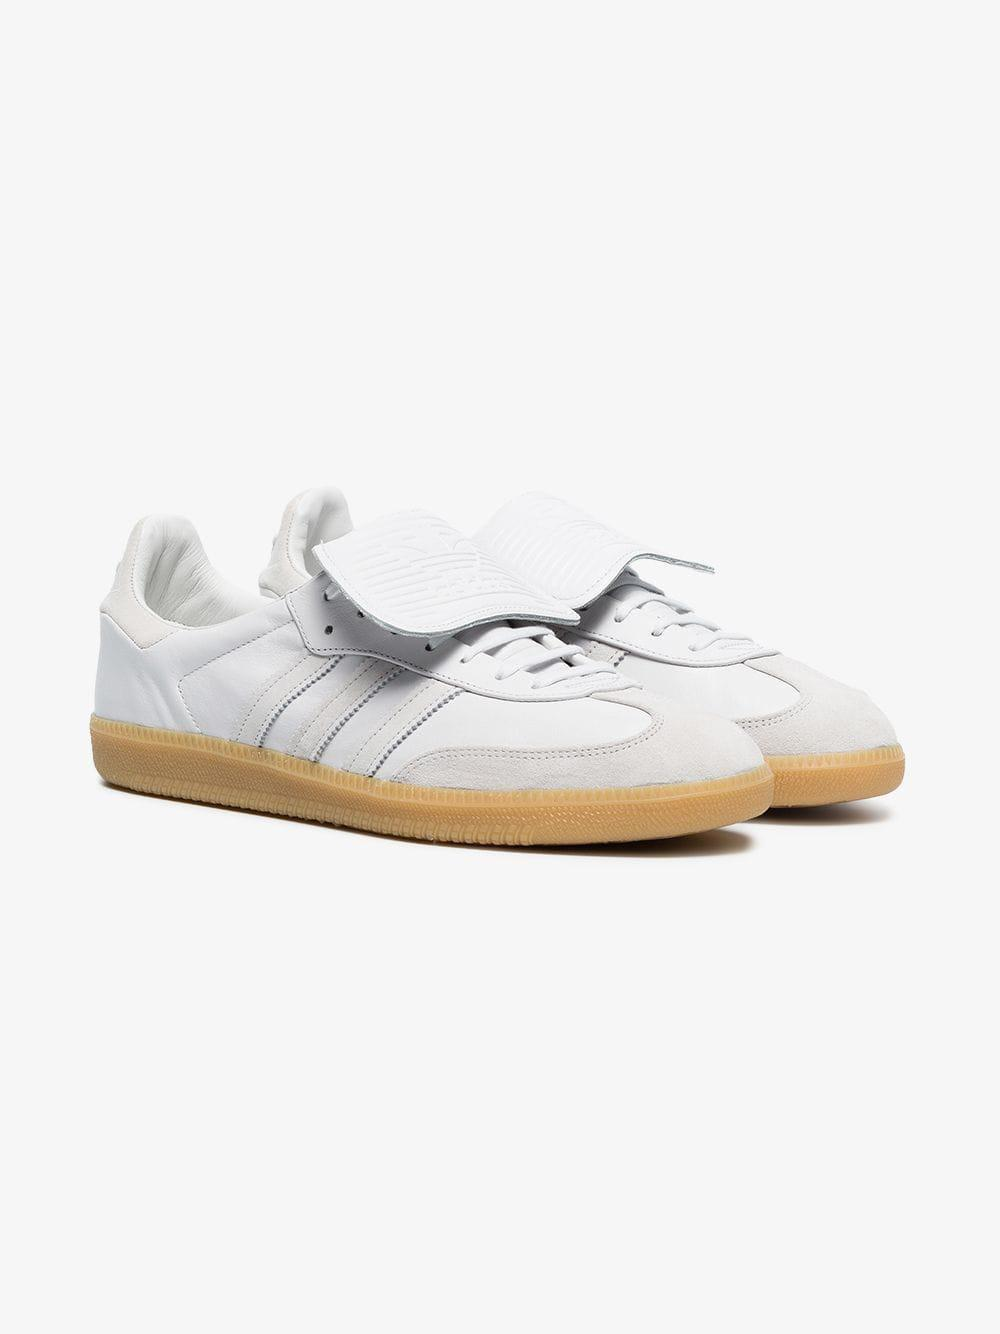 Sneakers Men Samba White For Recon Leather Lyst In Adidas 6yI4F0wqw